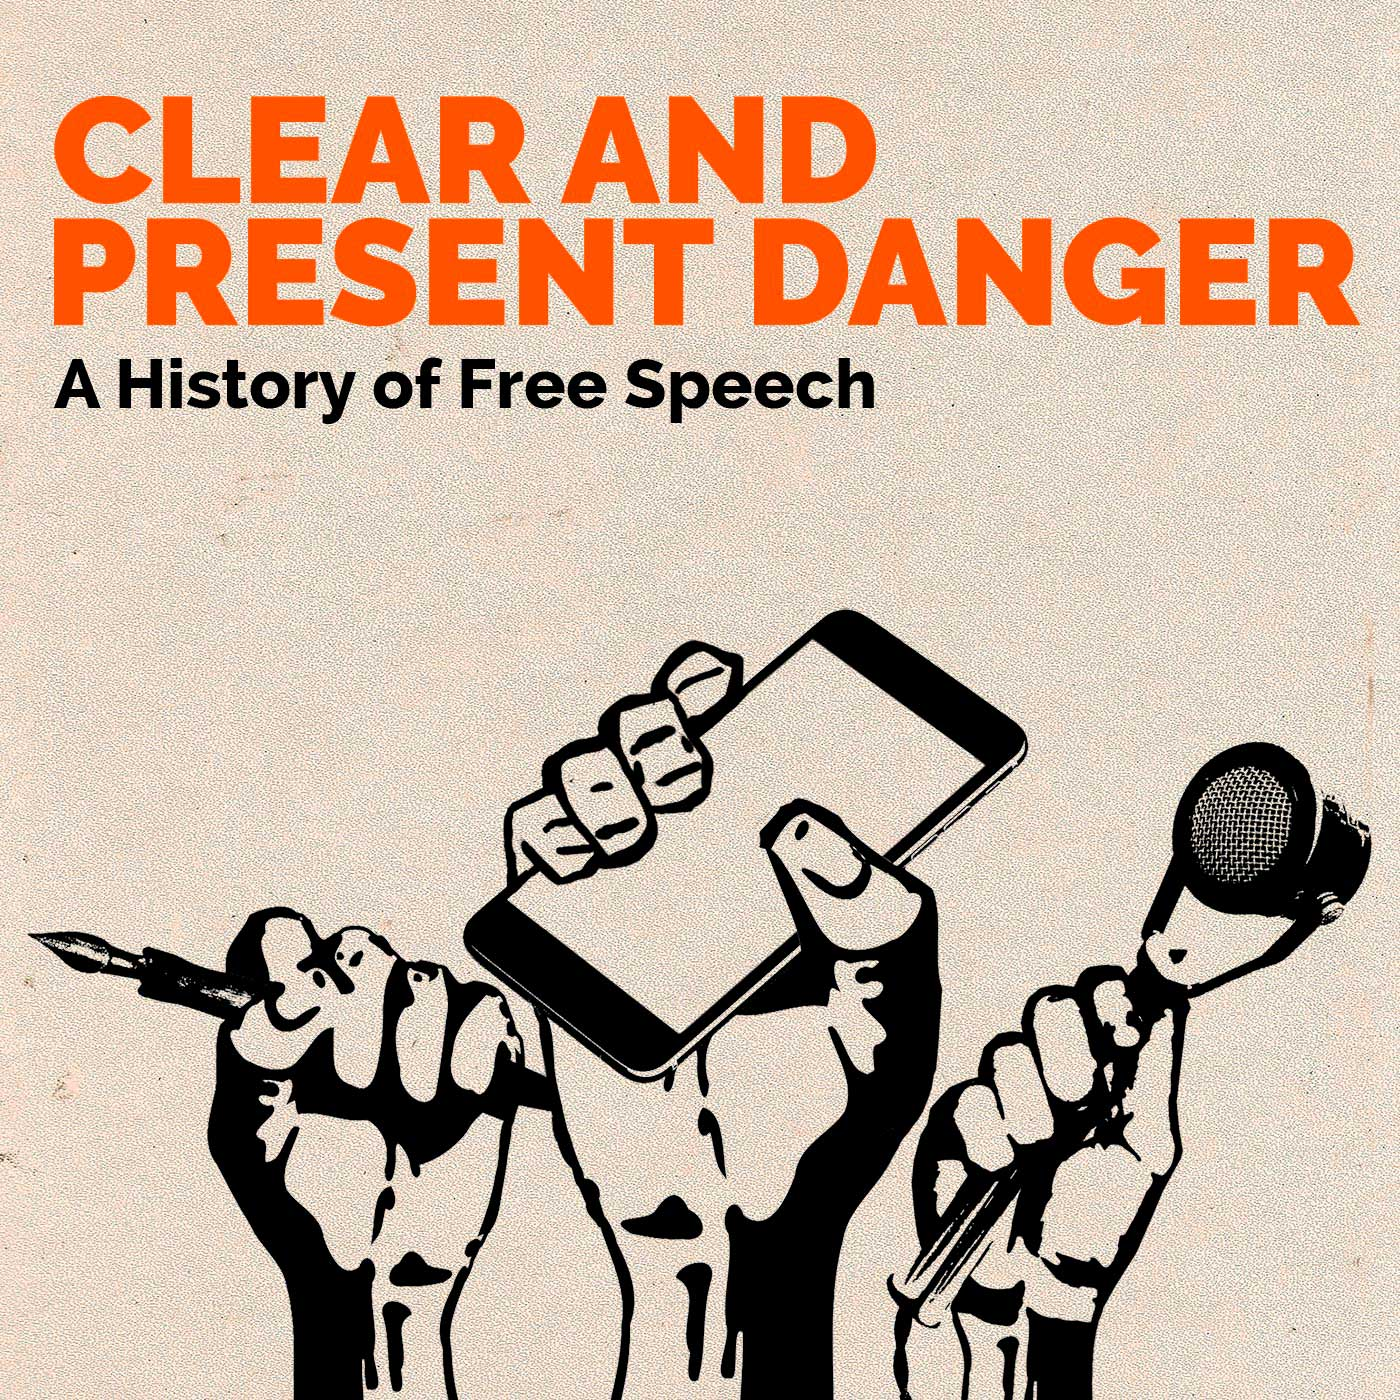 Clear and present danger a history of free speech | listen via.